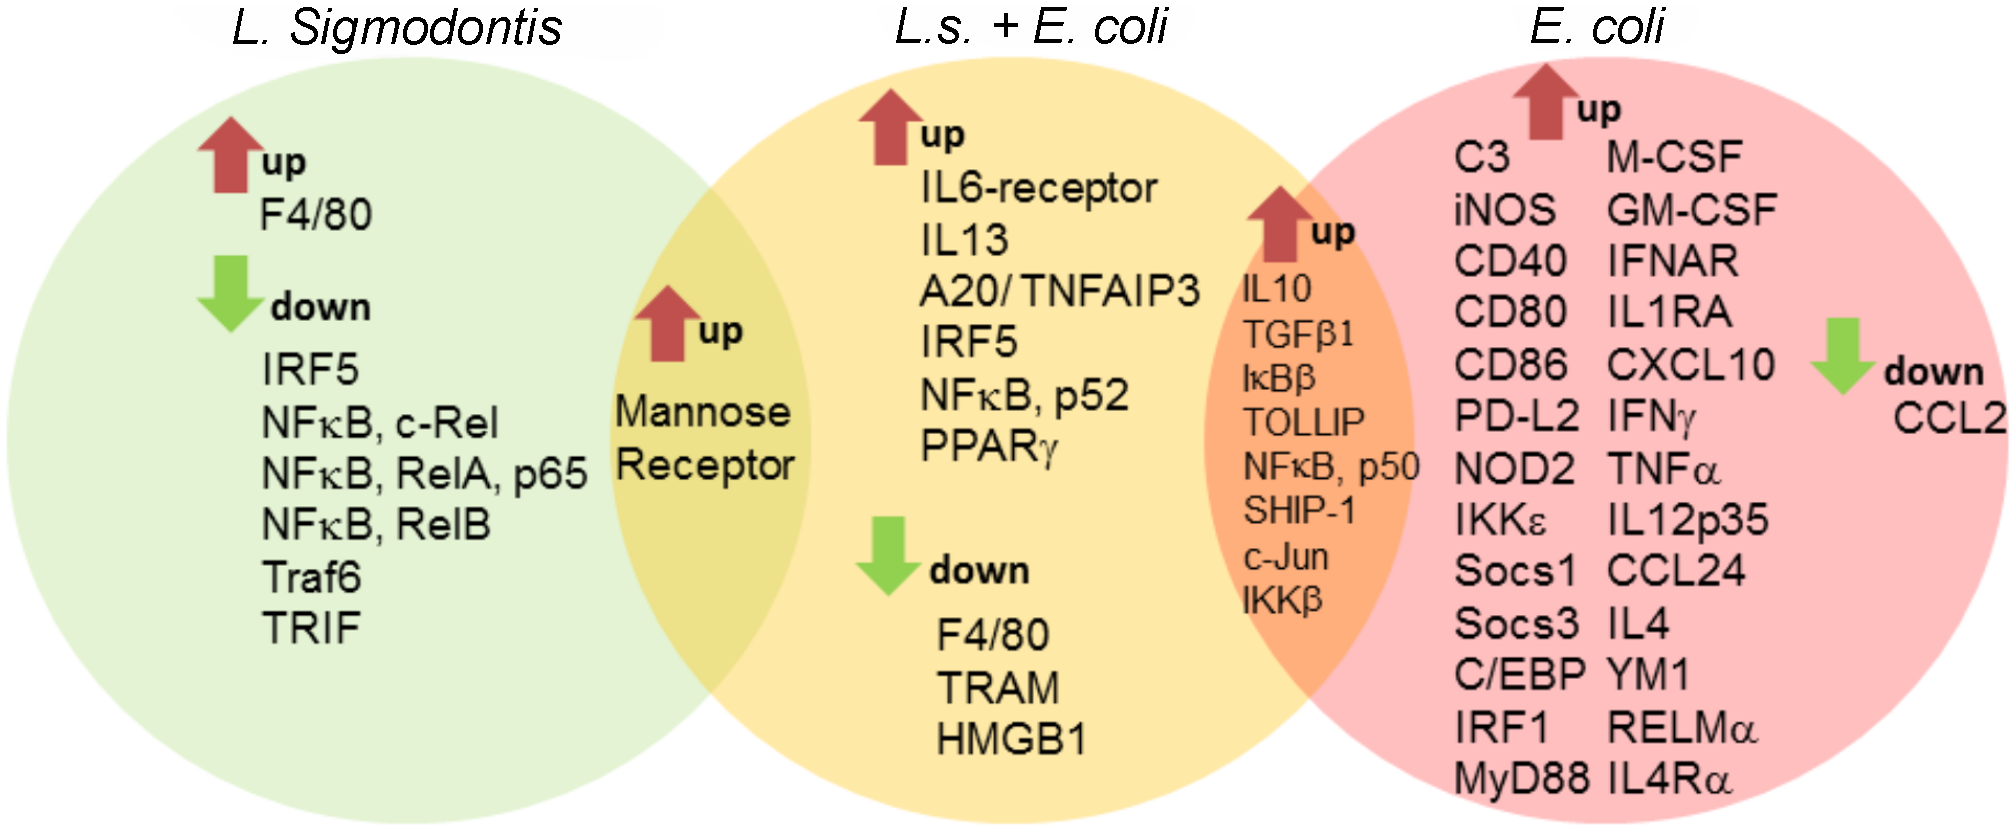 Macrophage transcriptional analysis reveals a less inflammatory phenotype in <i>L. sigmodontis</i>-infected mice during <i>E. coli</i> challenge.